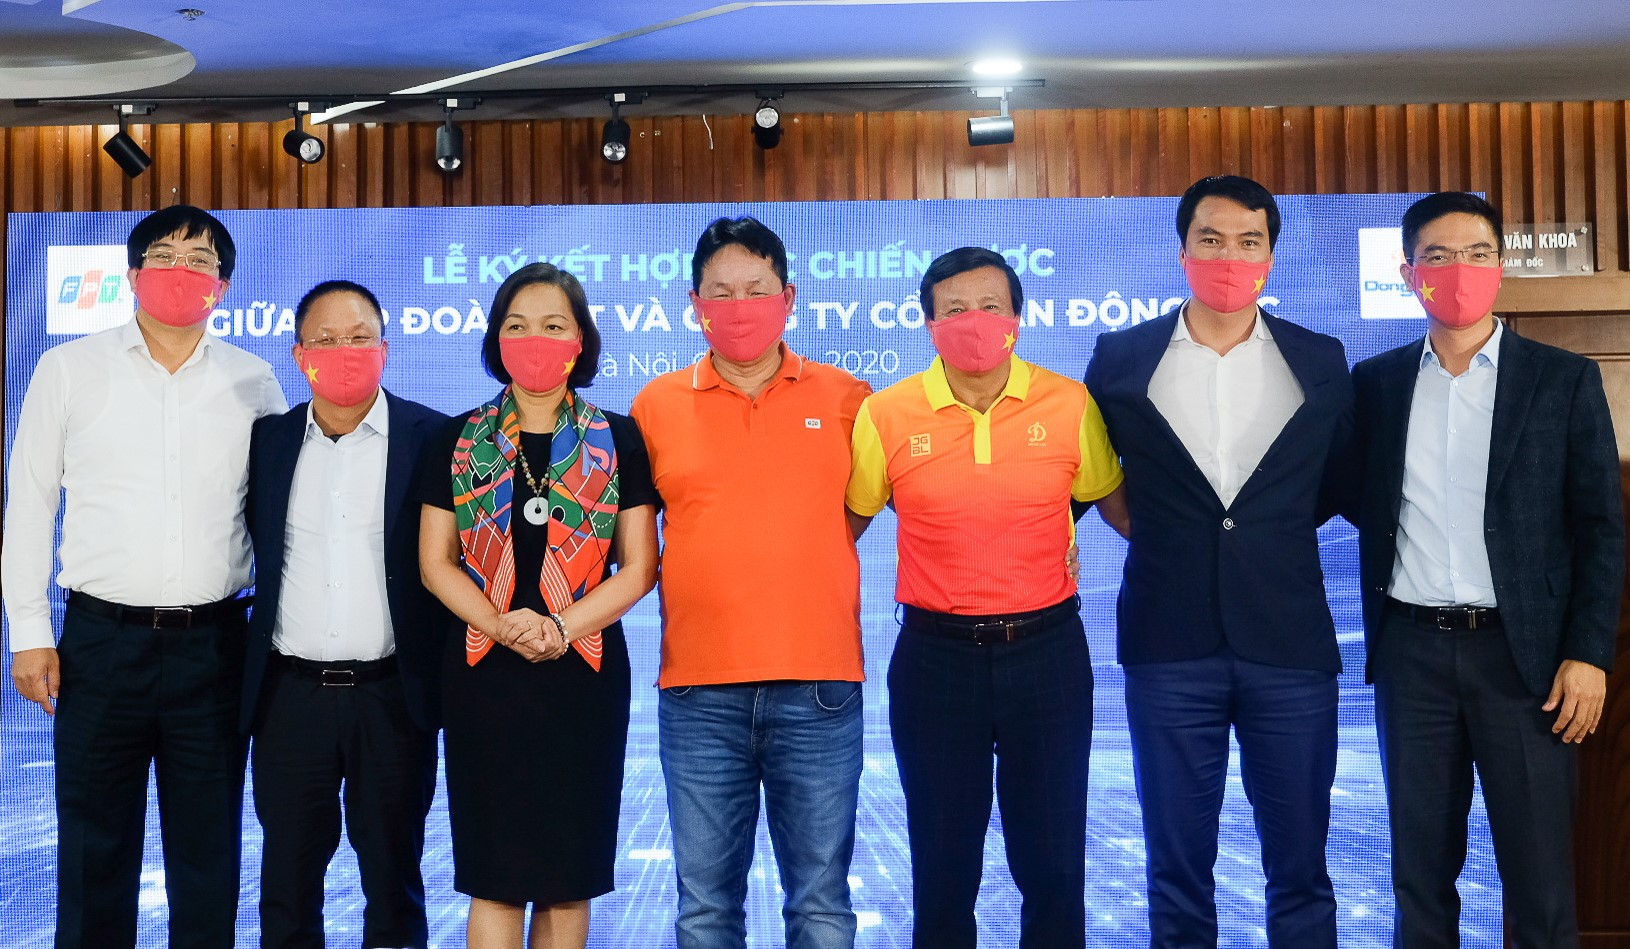 Dong Luc Group cooperates with FPT to pioneer digital transformation in Sport industry